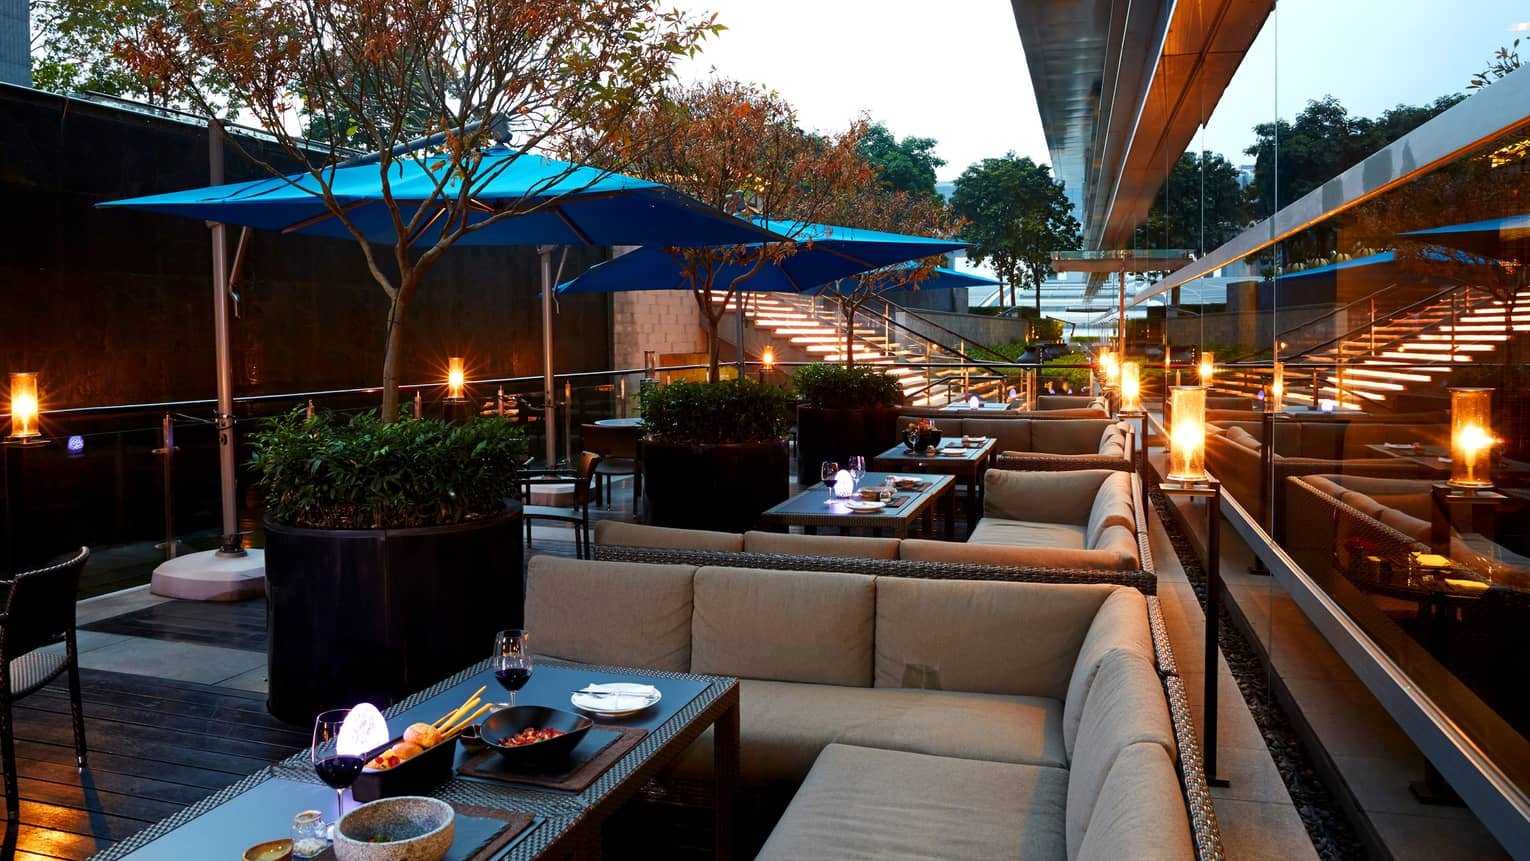 Foo rooftop patio lounge banquettes, potted trees, blue umbrellas